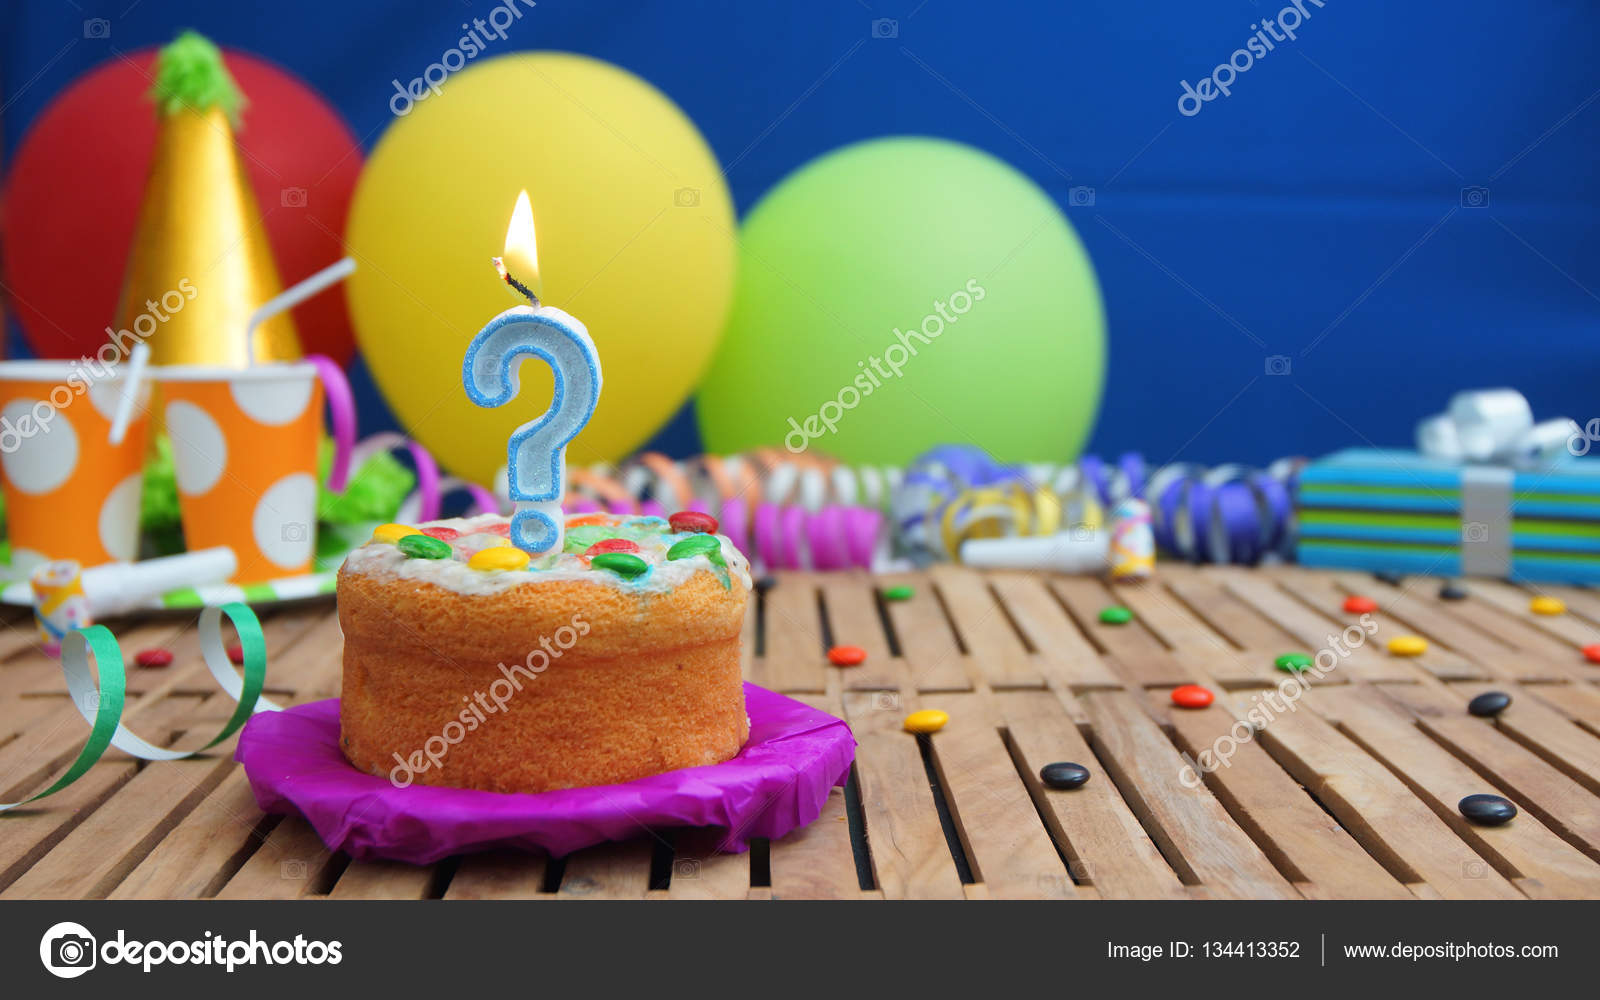 Birthday Cake With Candle In The Shape Of A Question Mark On Rustic